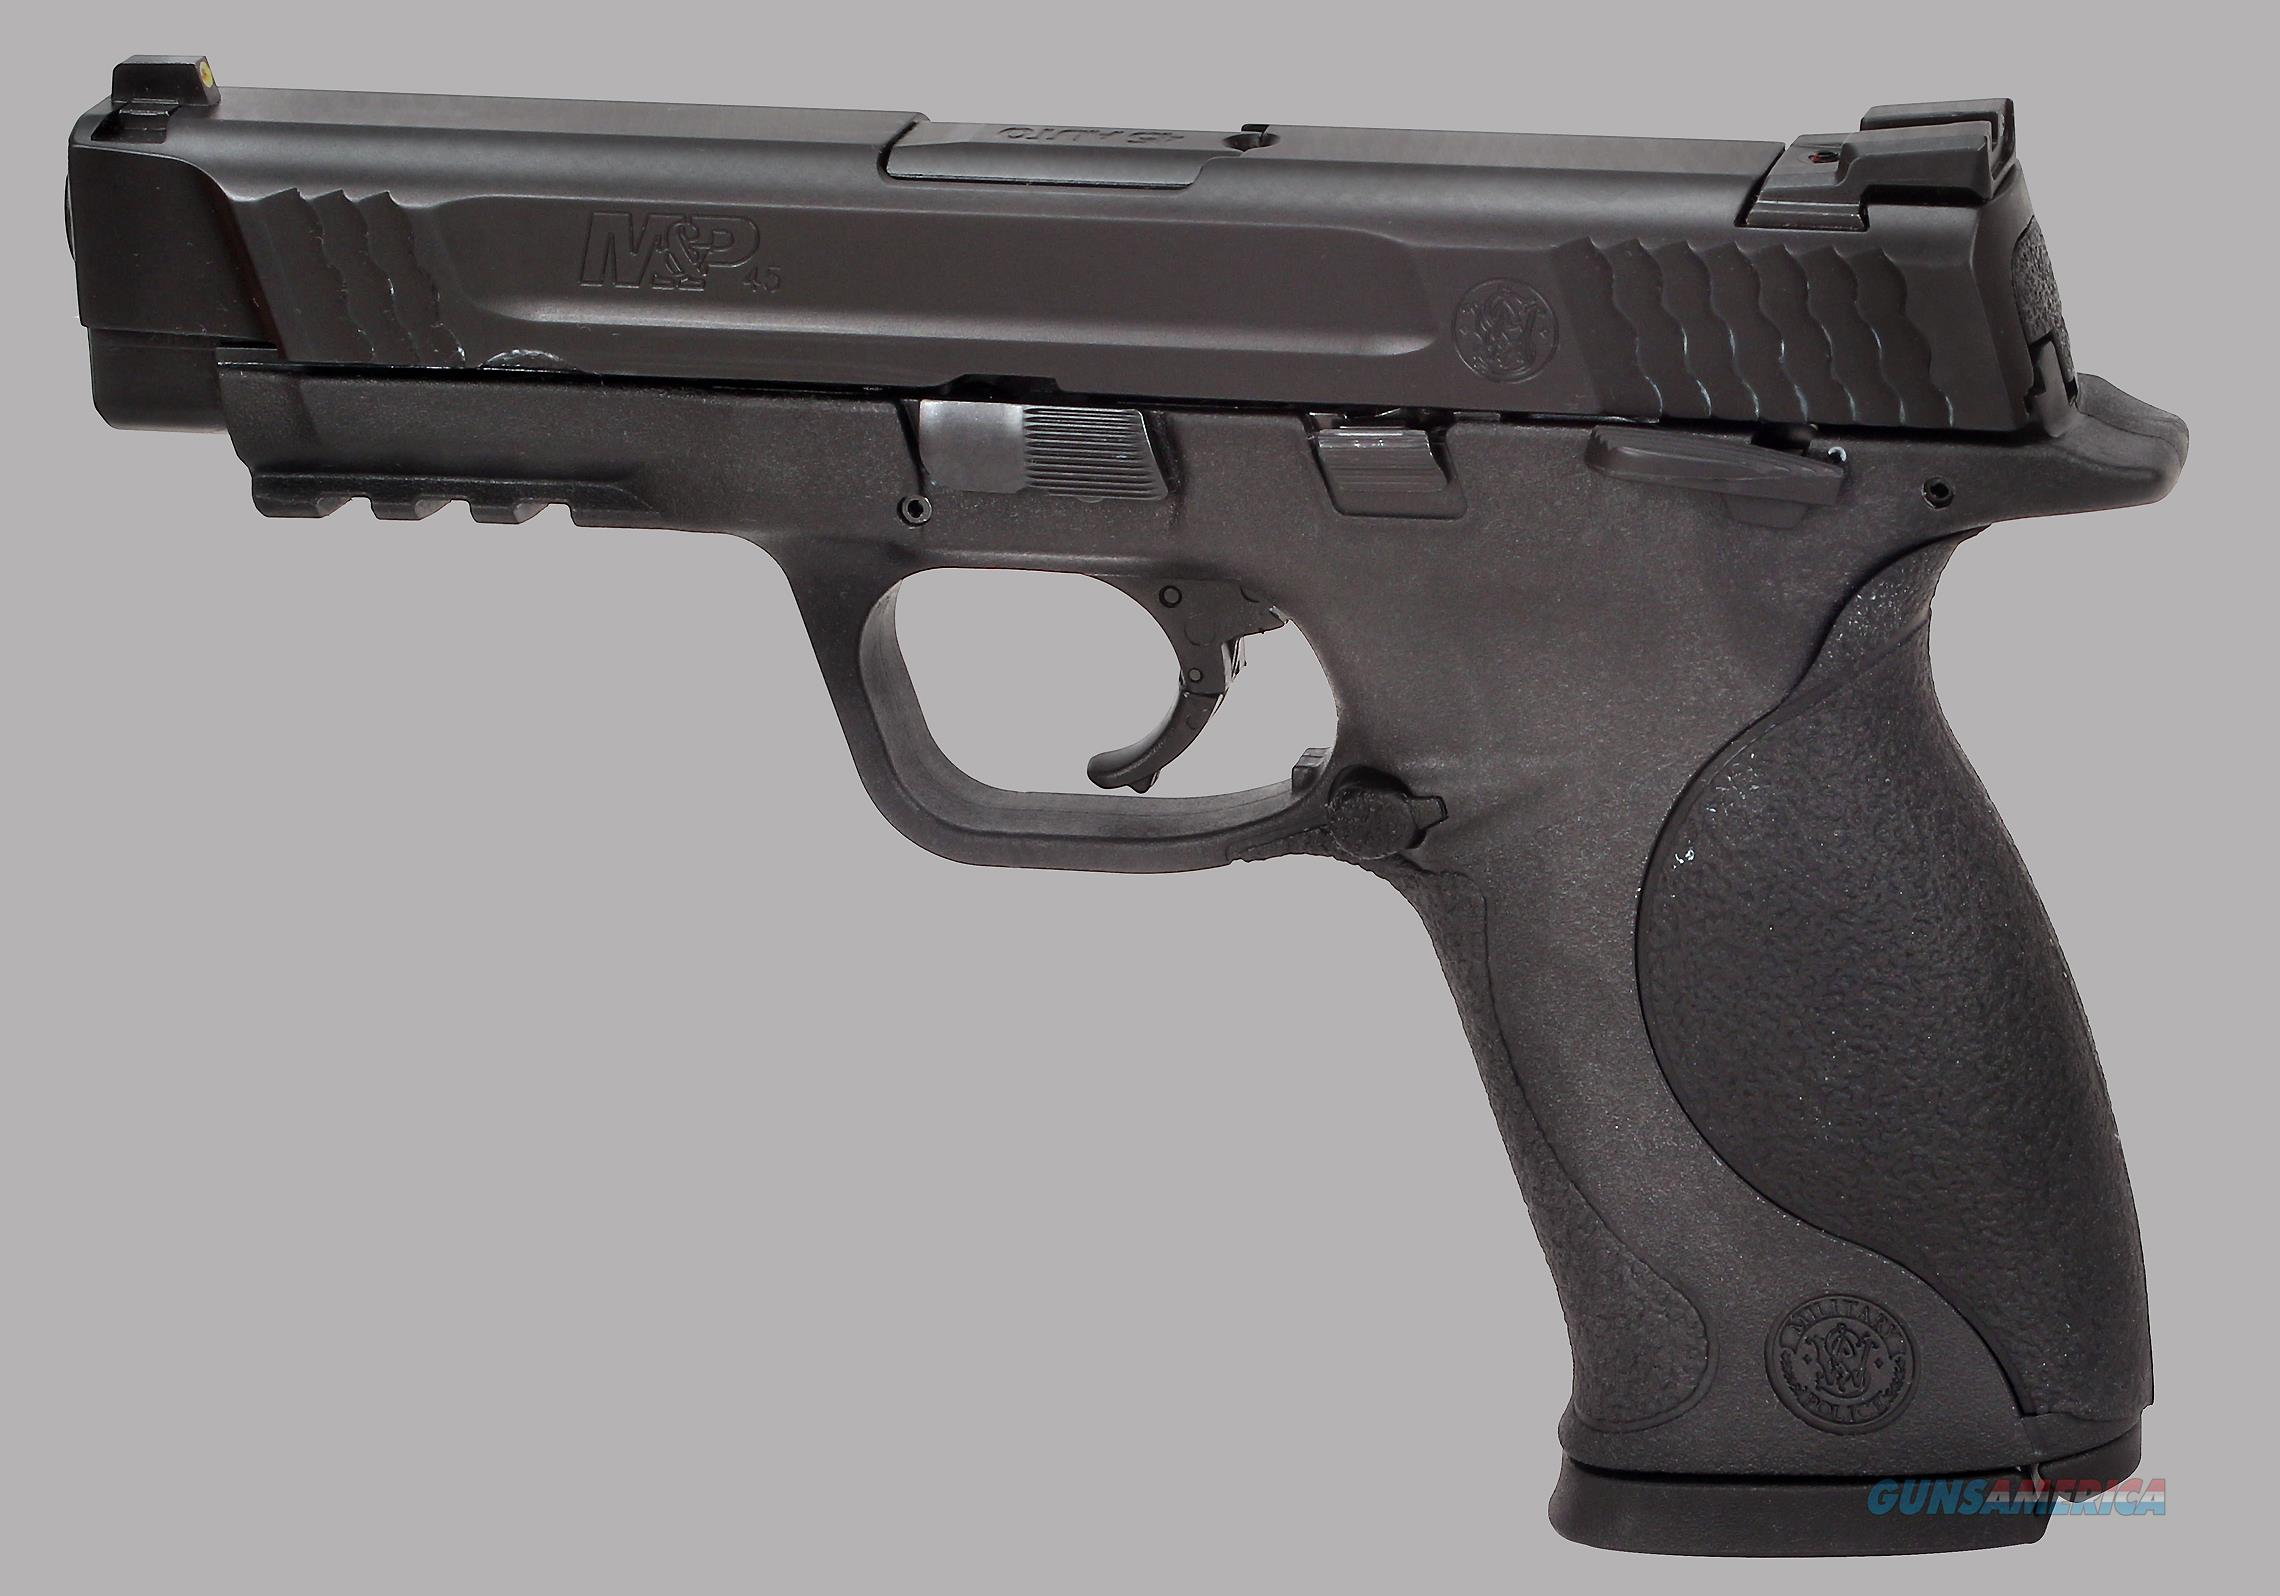 Smith & Wesson 45acp M&P45 Pistol  Guns > Pistols > Smith & Wesson Pistols - Autos > Polymer Frame